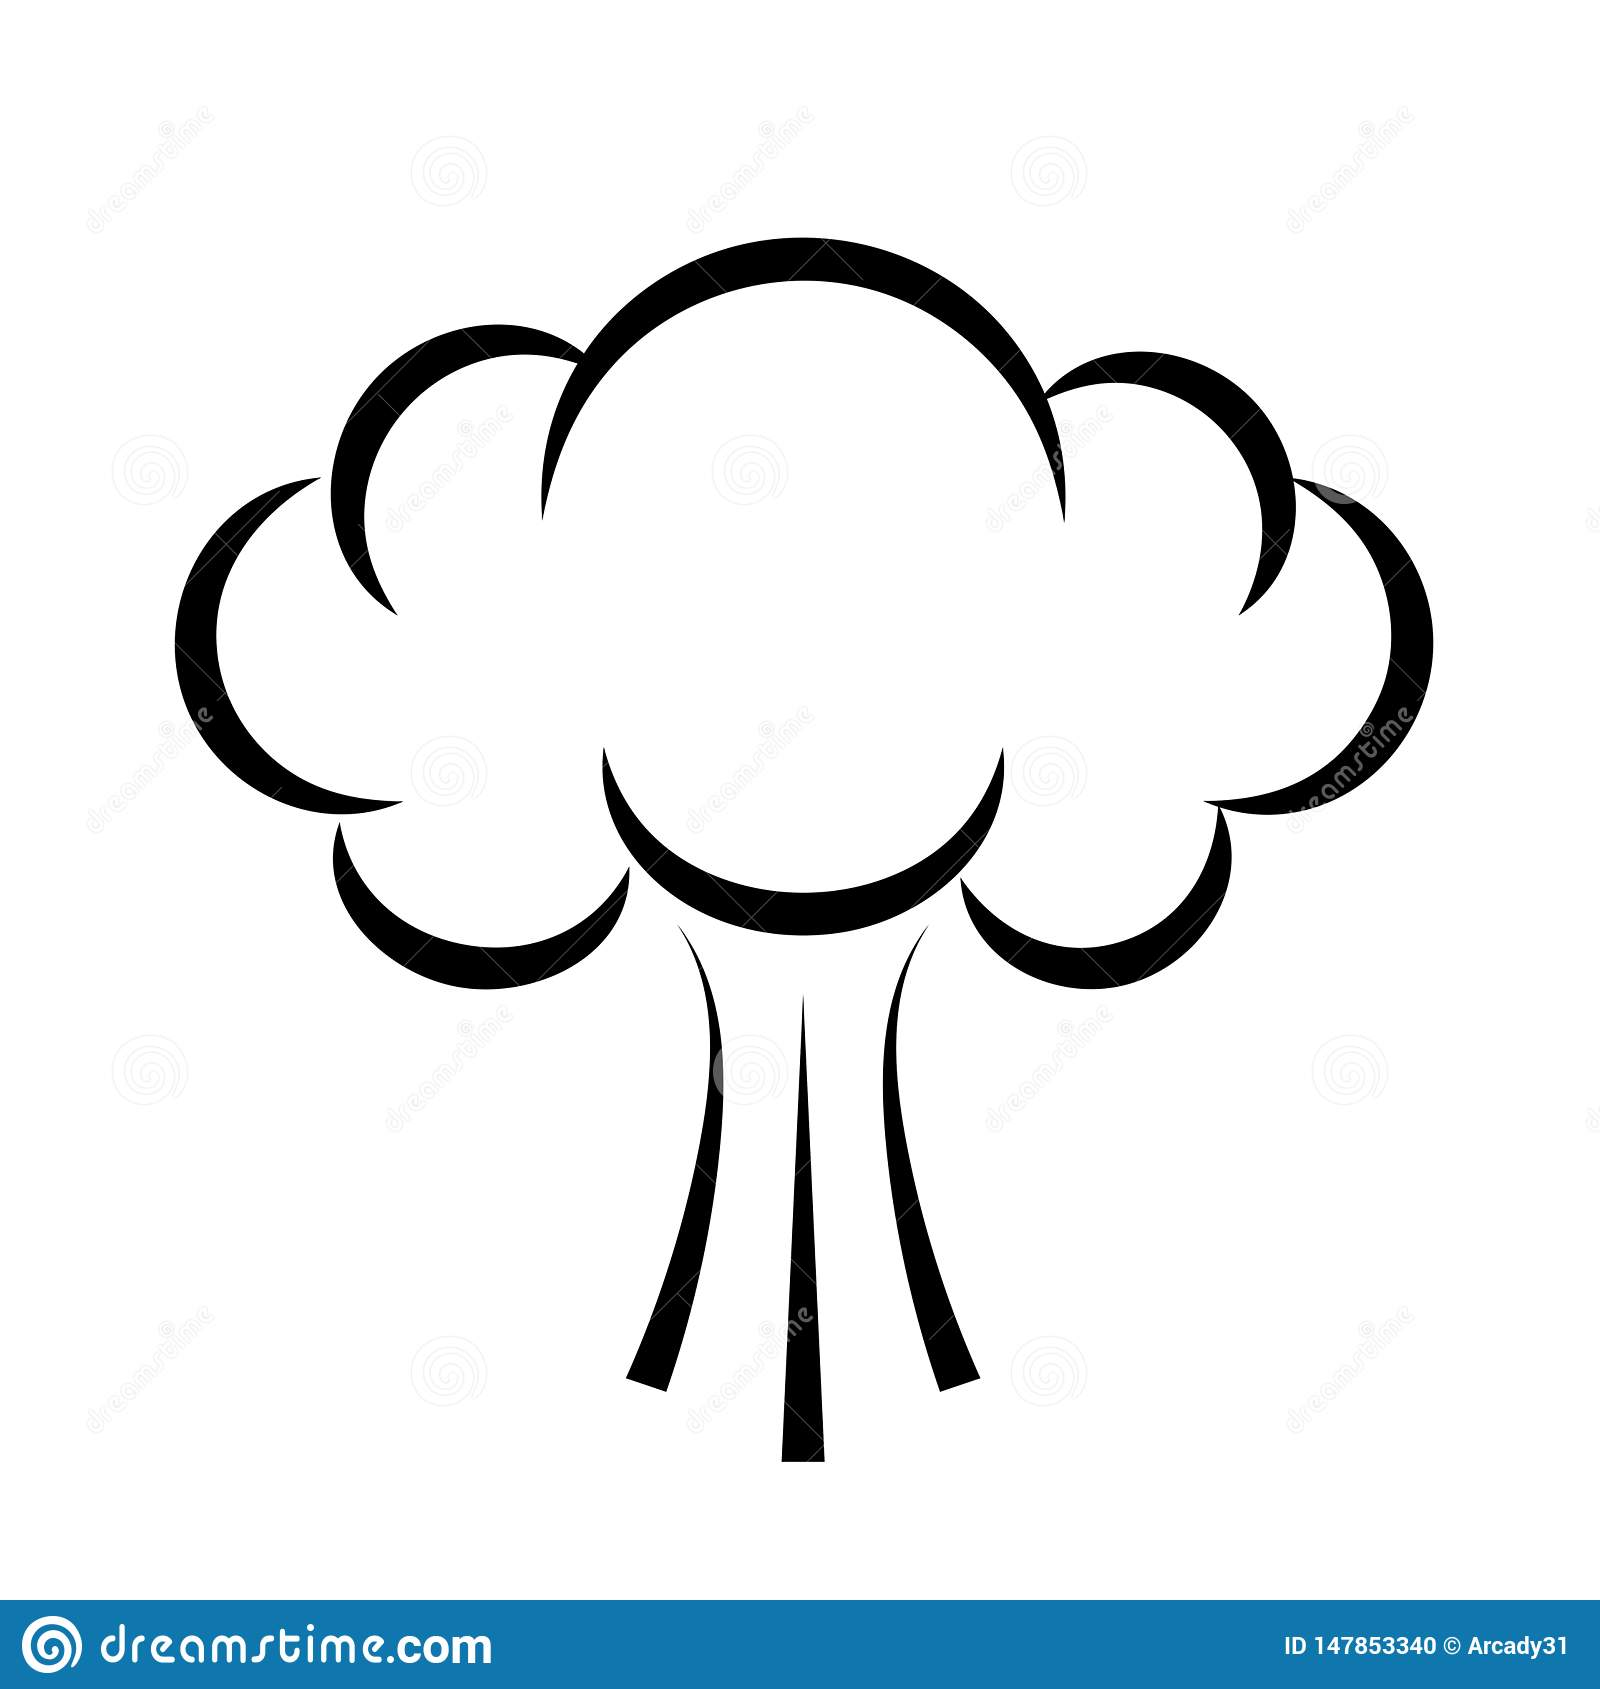 It is a photo of Old Fashioned Smoke Cloud Drawing